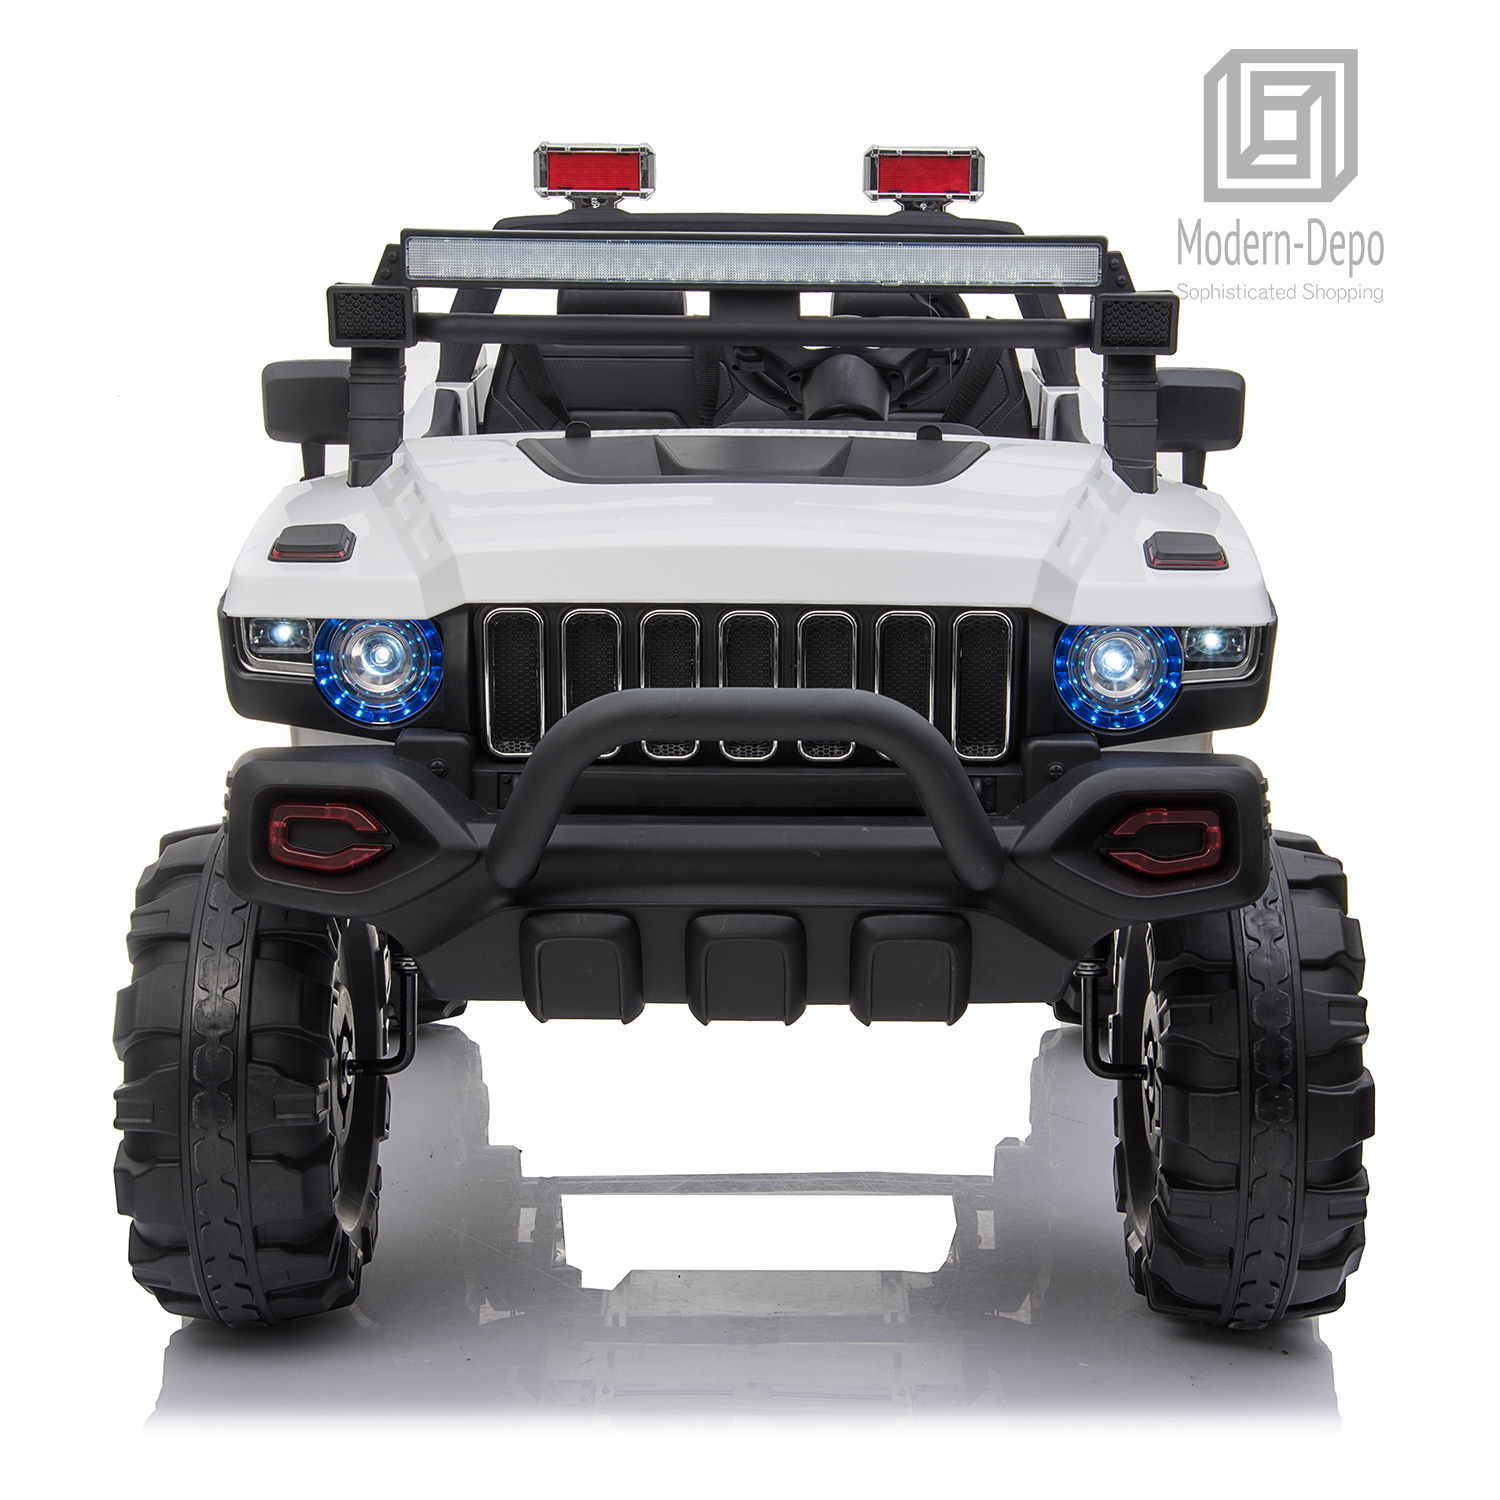 2-Seaters-4-4-Off-Road-Electric-12V-Ride-on-Car-with-Remote-Control miniature 35